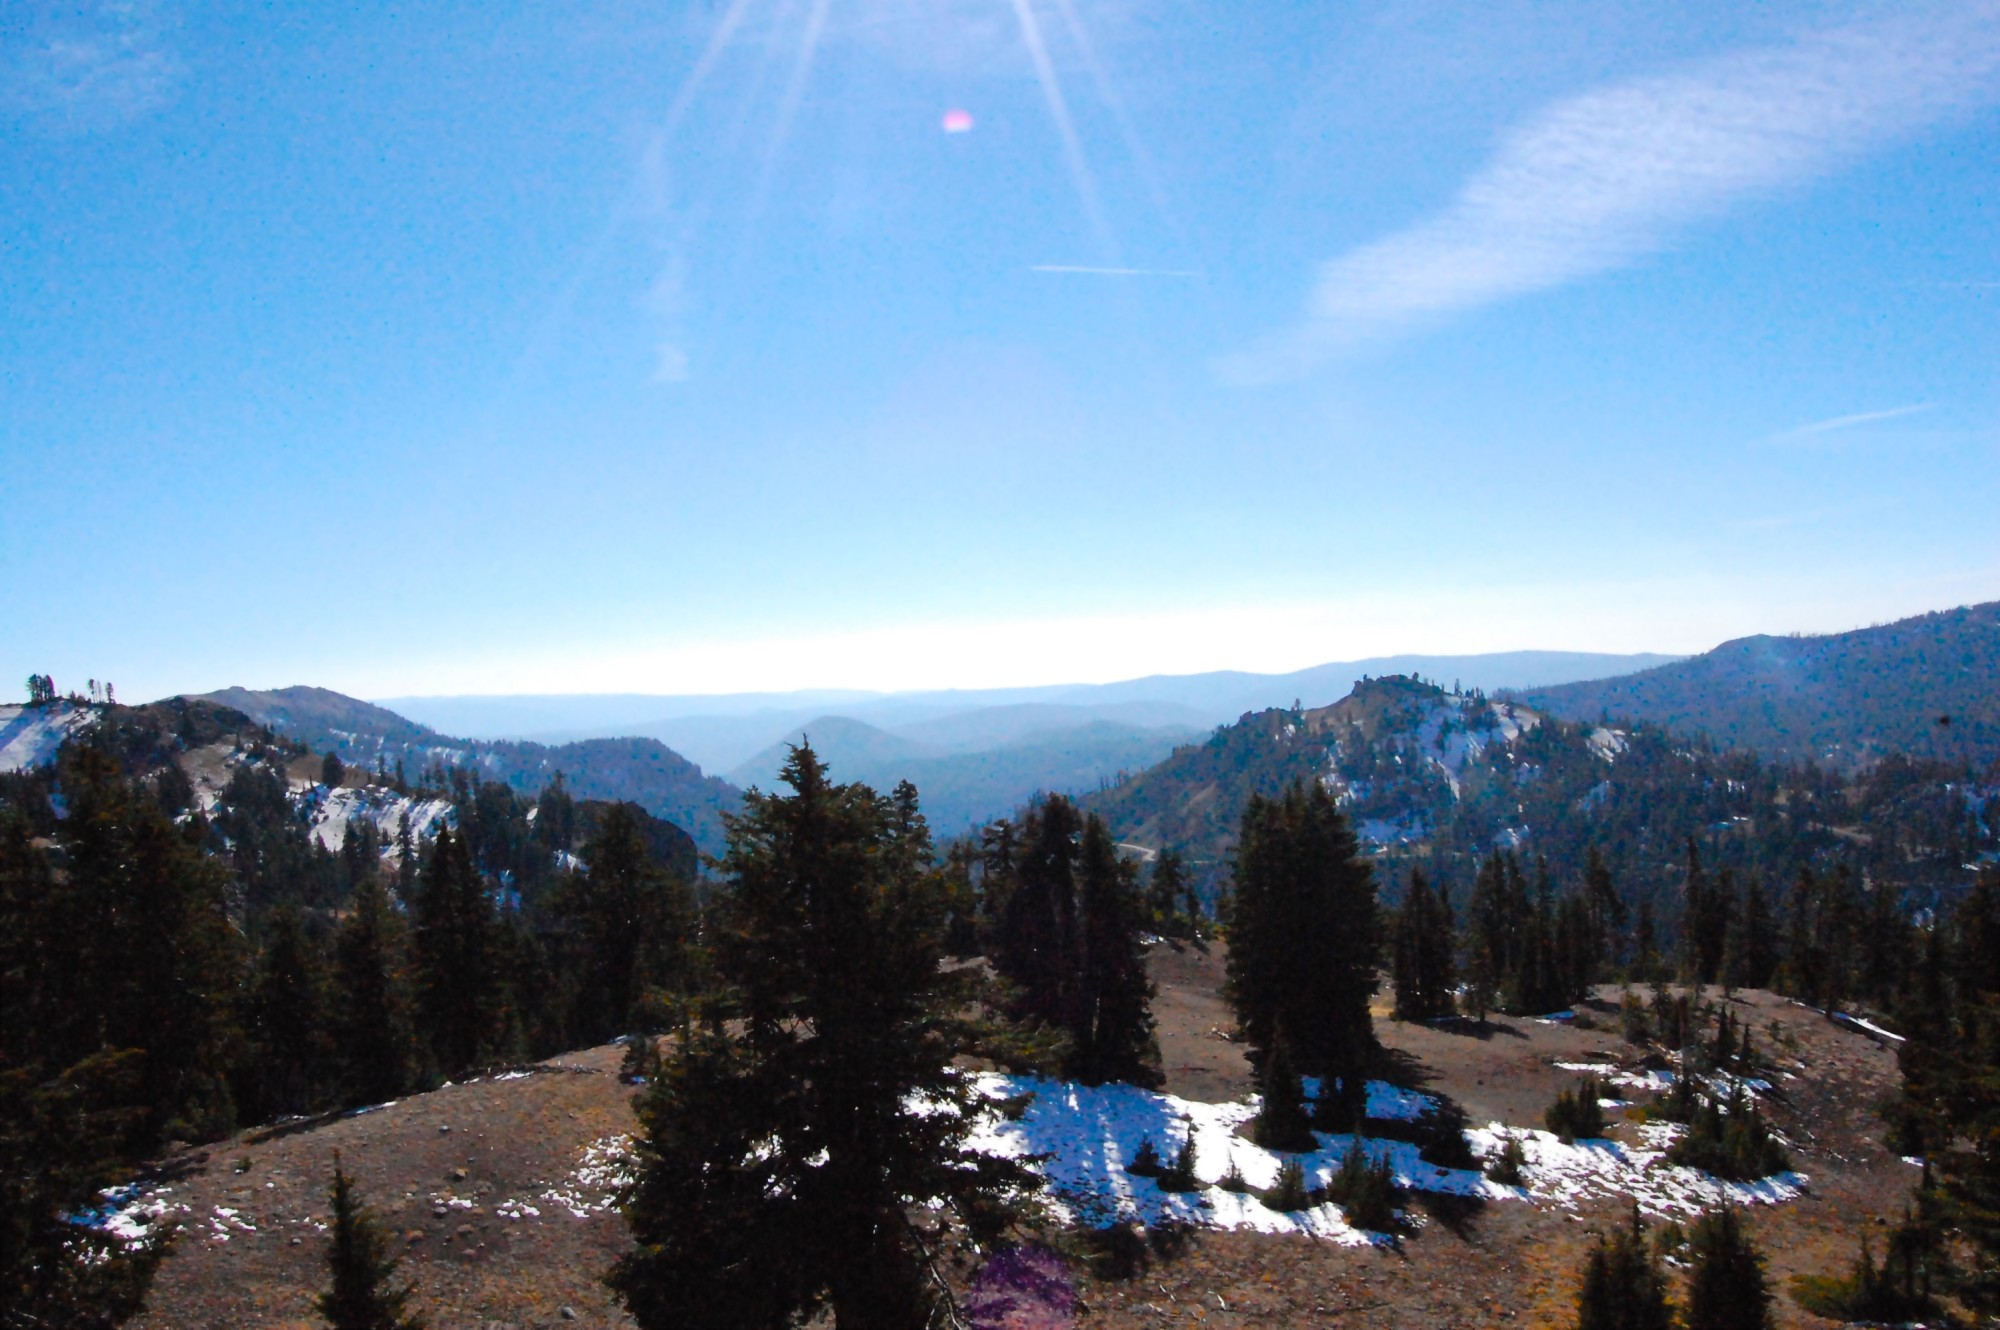 Views from the drive around Lassen Volcanic National Park